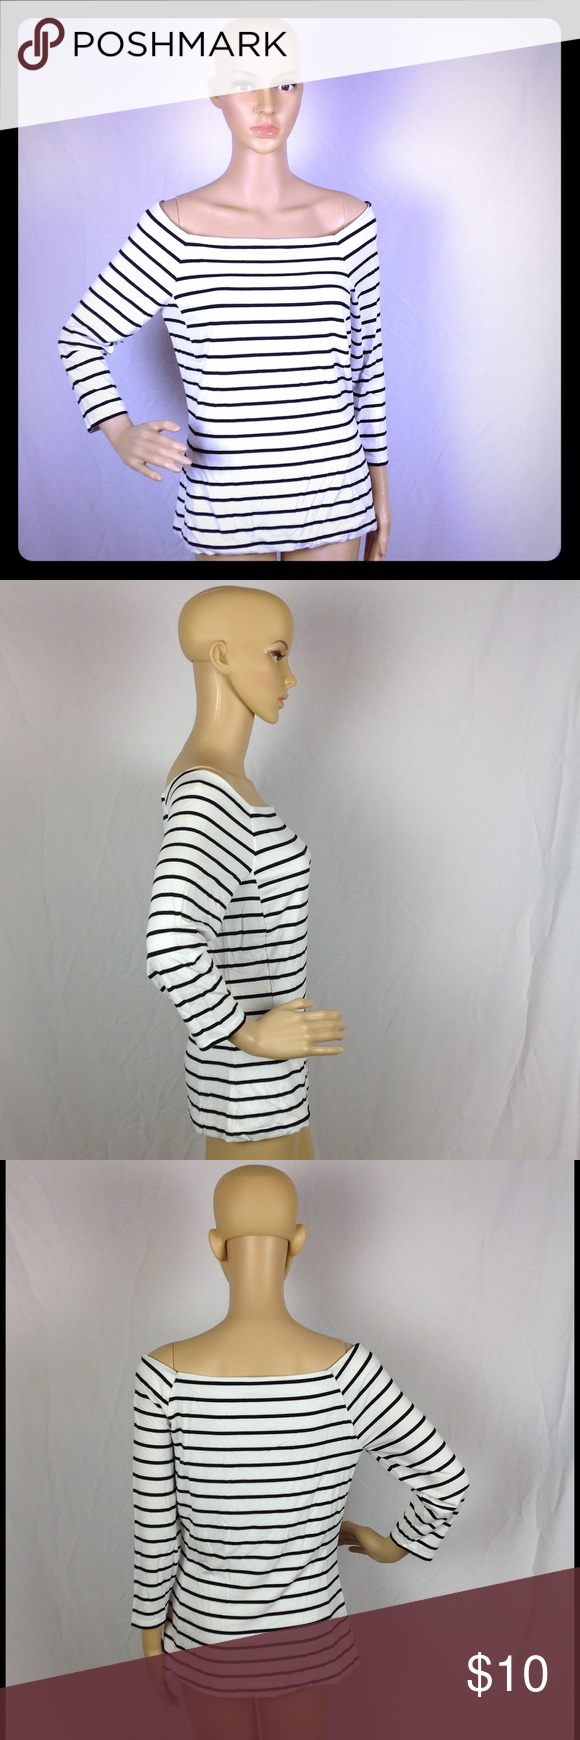 White House Black Market Off Shoulder Blouse Sz M Pre-owned and gently used! Super soft!!! White House Black Market Tops Blouses